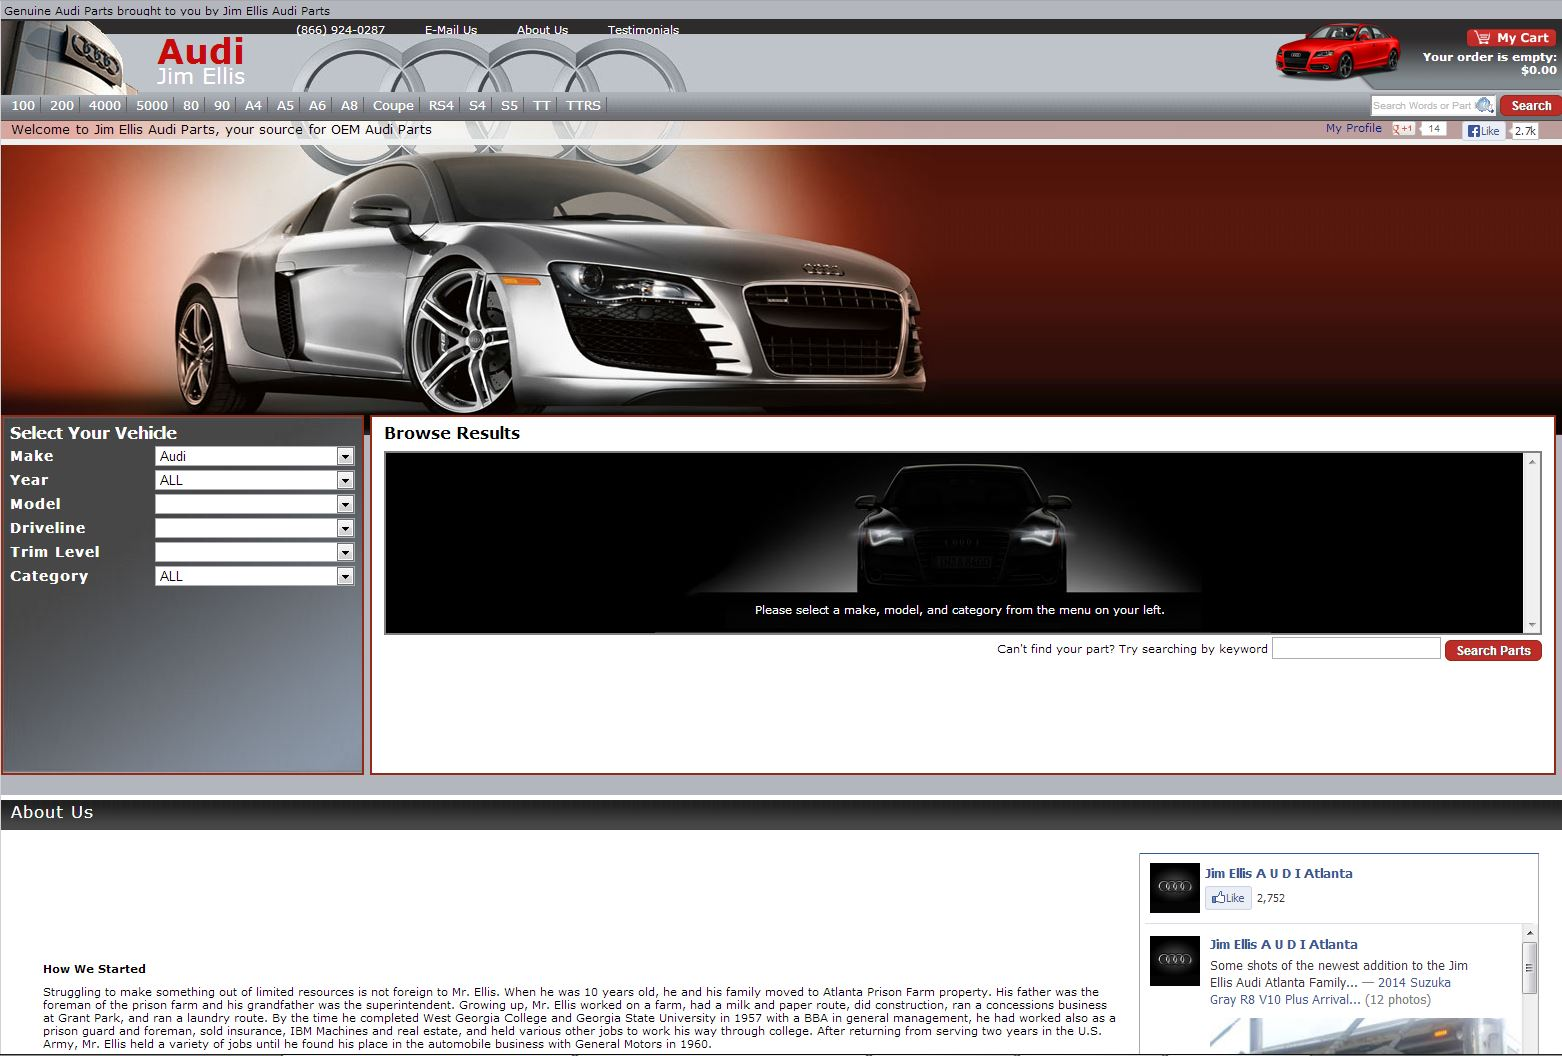 jim ellis audi parts rated 5 5 stars by 131 consumers. Black Bedroom Furniture Sets. Home Design Ideas